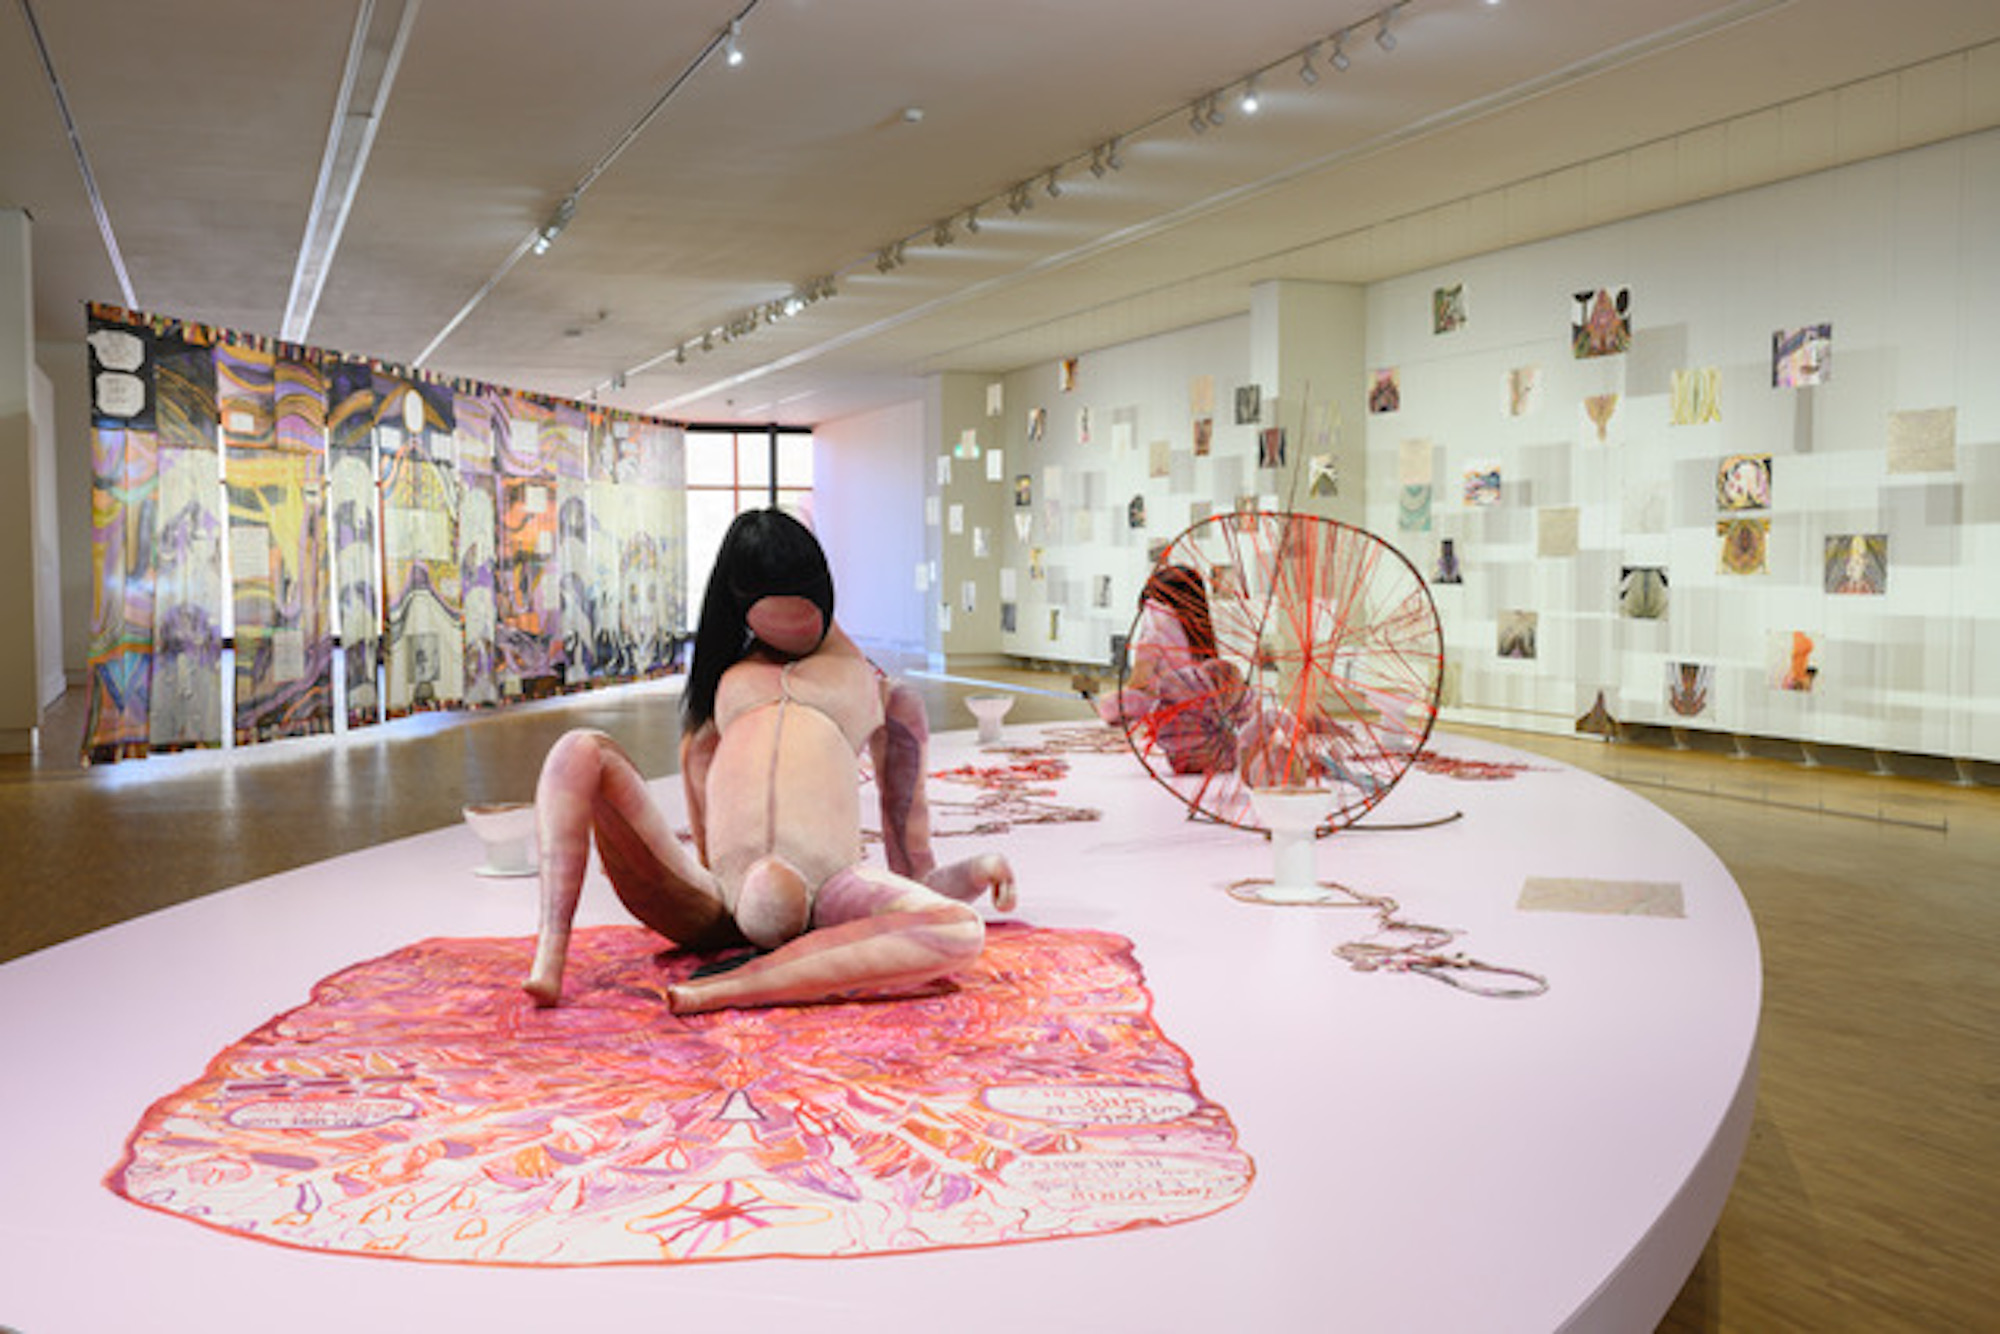 Emma Talbot, Installation view from Sounders of the Depths, showing the work Your Birth - the epic historical moment you can't remember. GEM Museum Voor Actuele Kunst, The Hague. Photo by Peter Cox